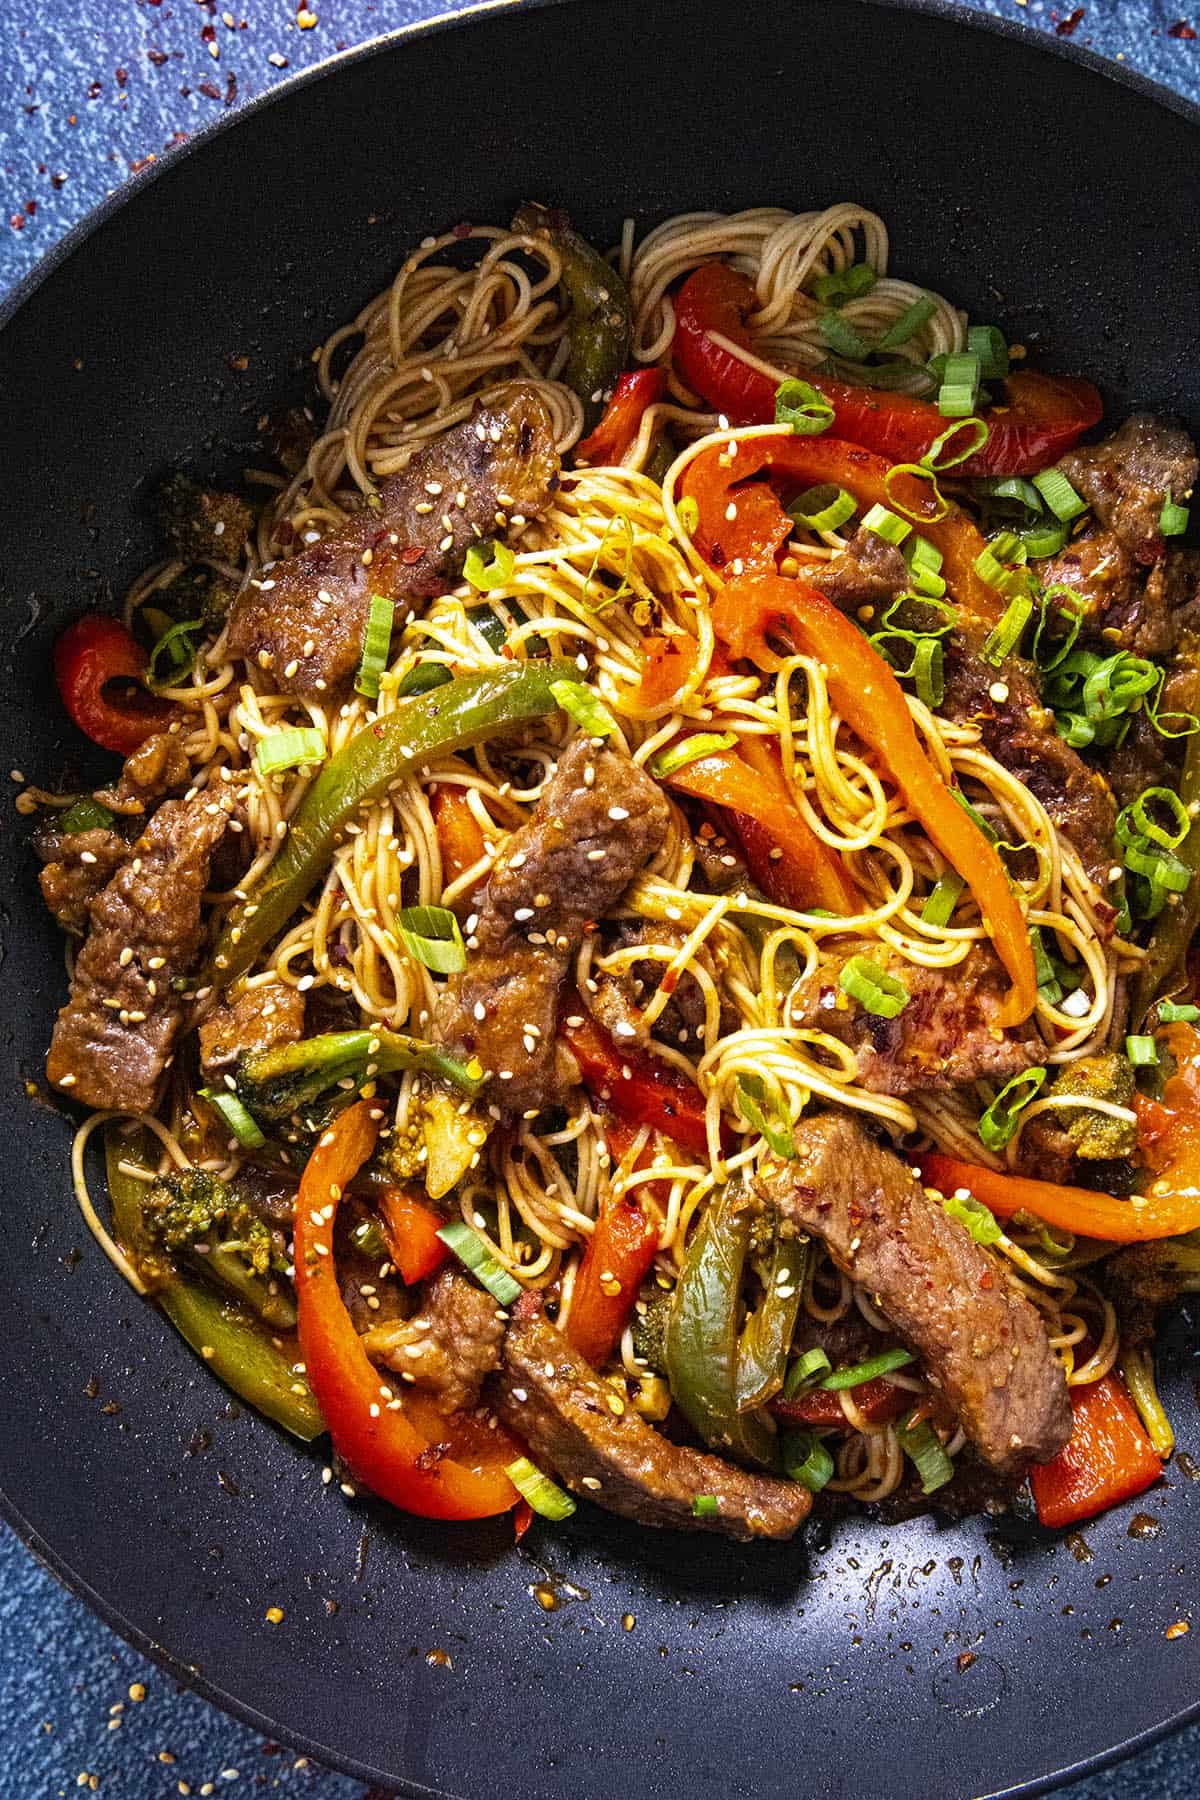 Spicy Beef Stir Fry with noodles in a pan with lots of vegetables